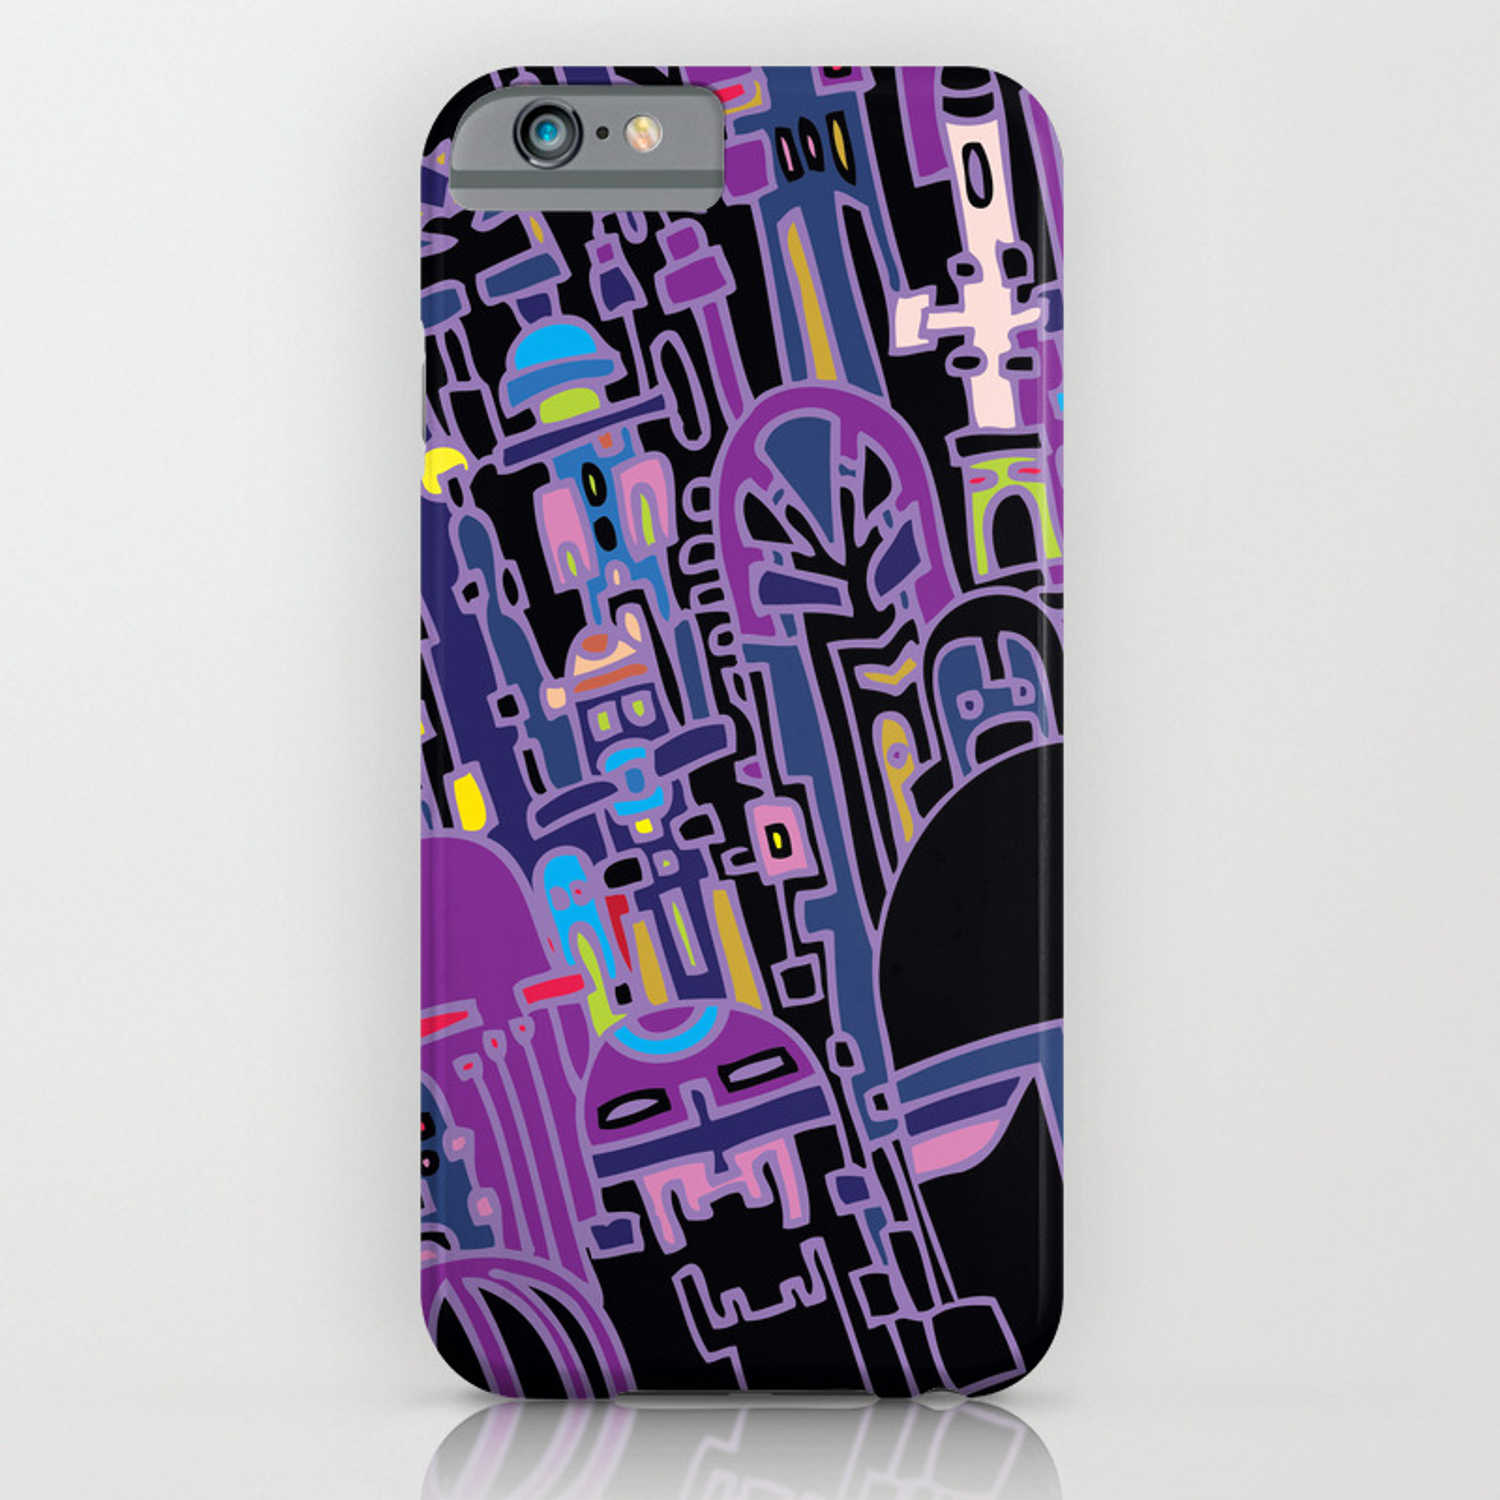 68c493eb974 SILICON VALLEY HIGH iPhone Case by larsonlarson | Society6